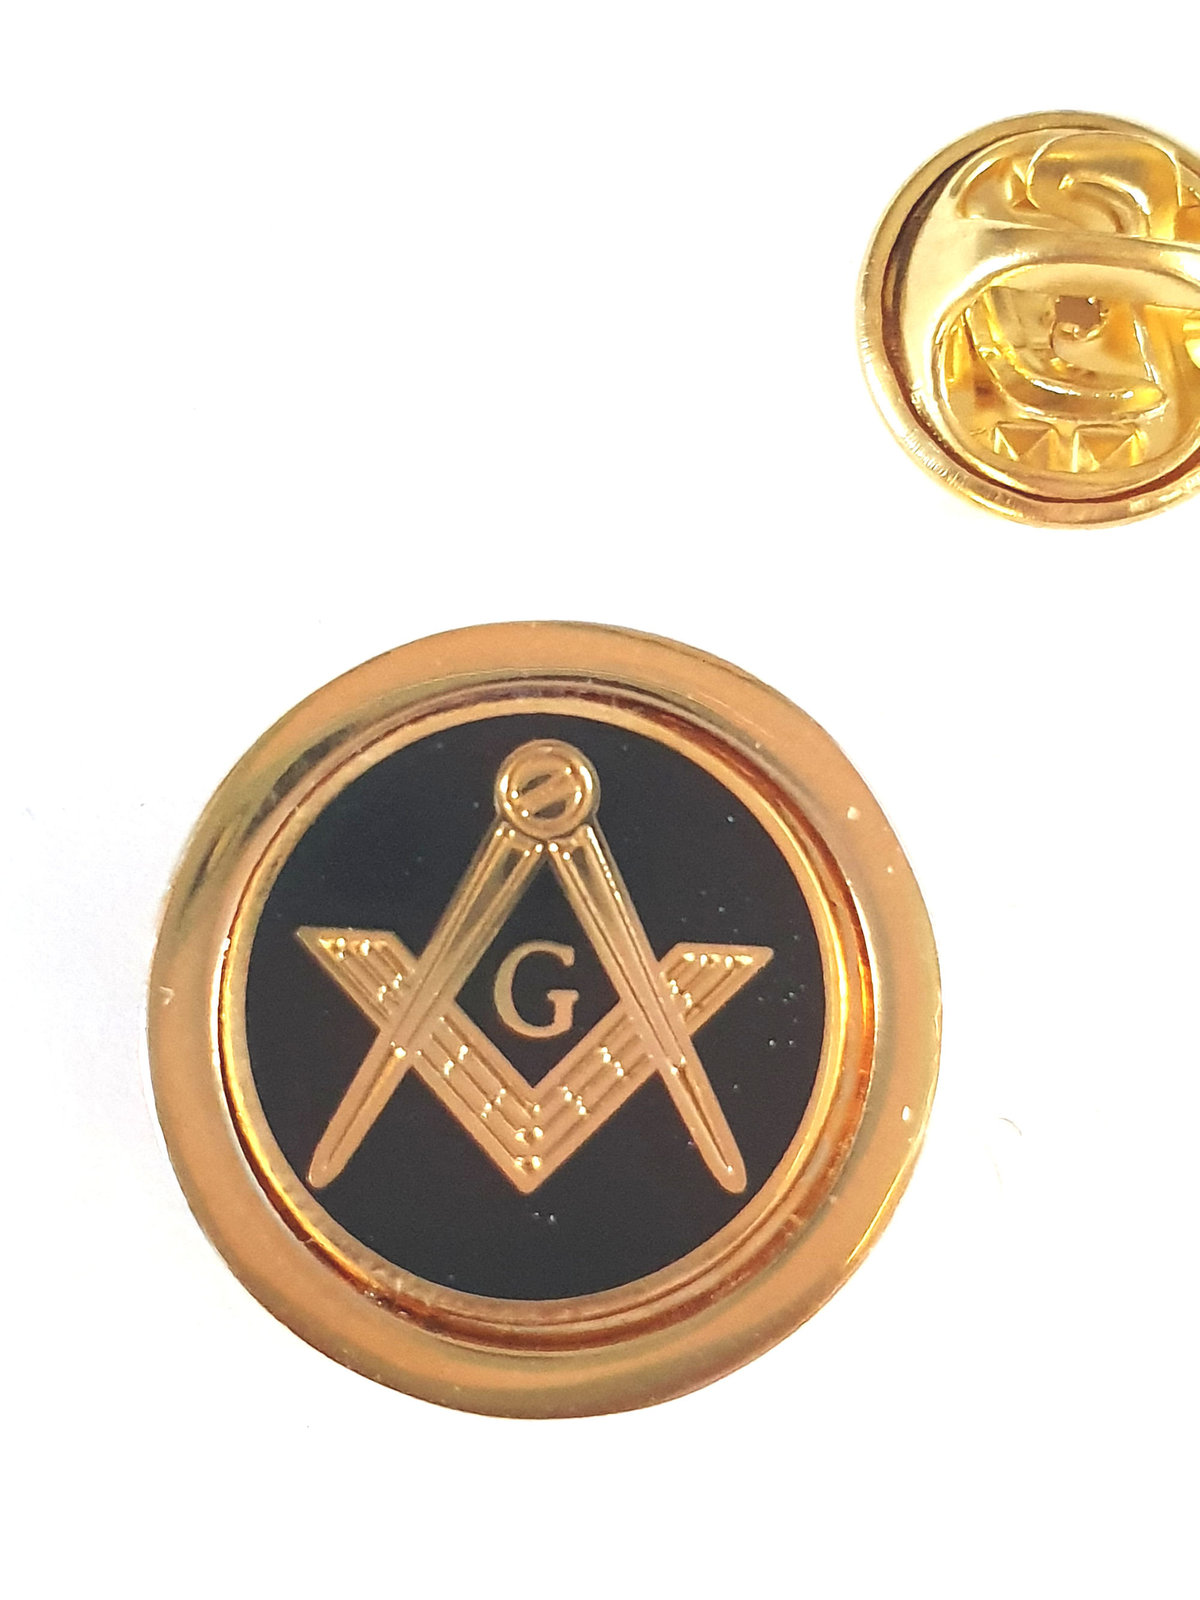 gold masonic with g Lapel Pin Badge / tie pin, Lapel Pin Badge gift boxed